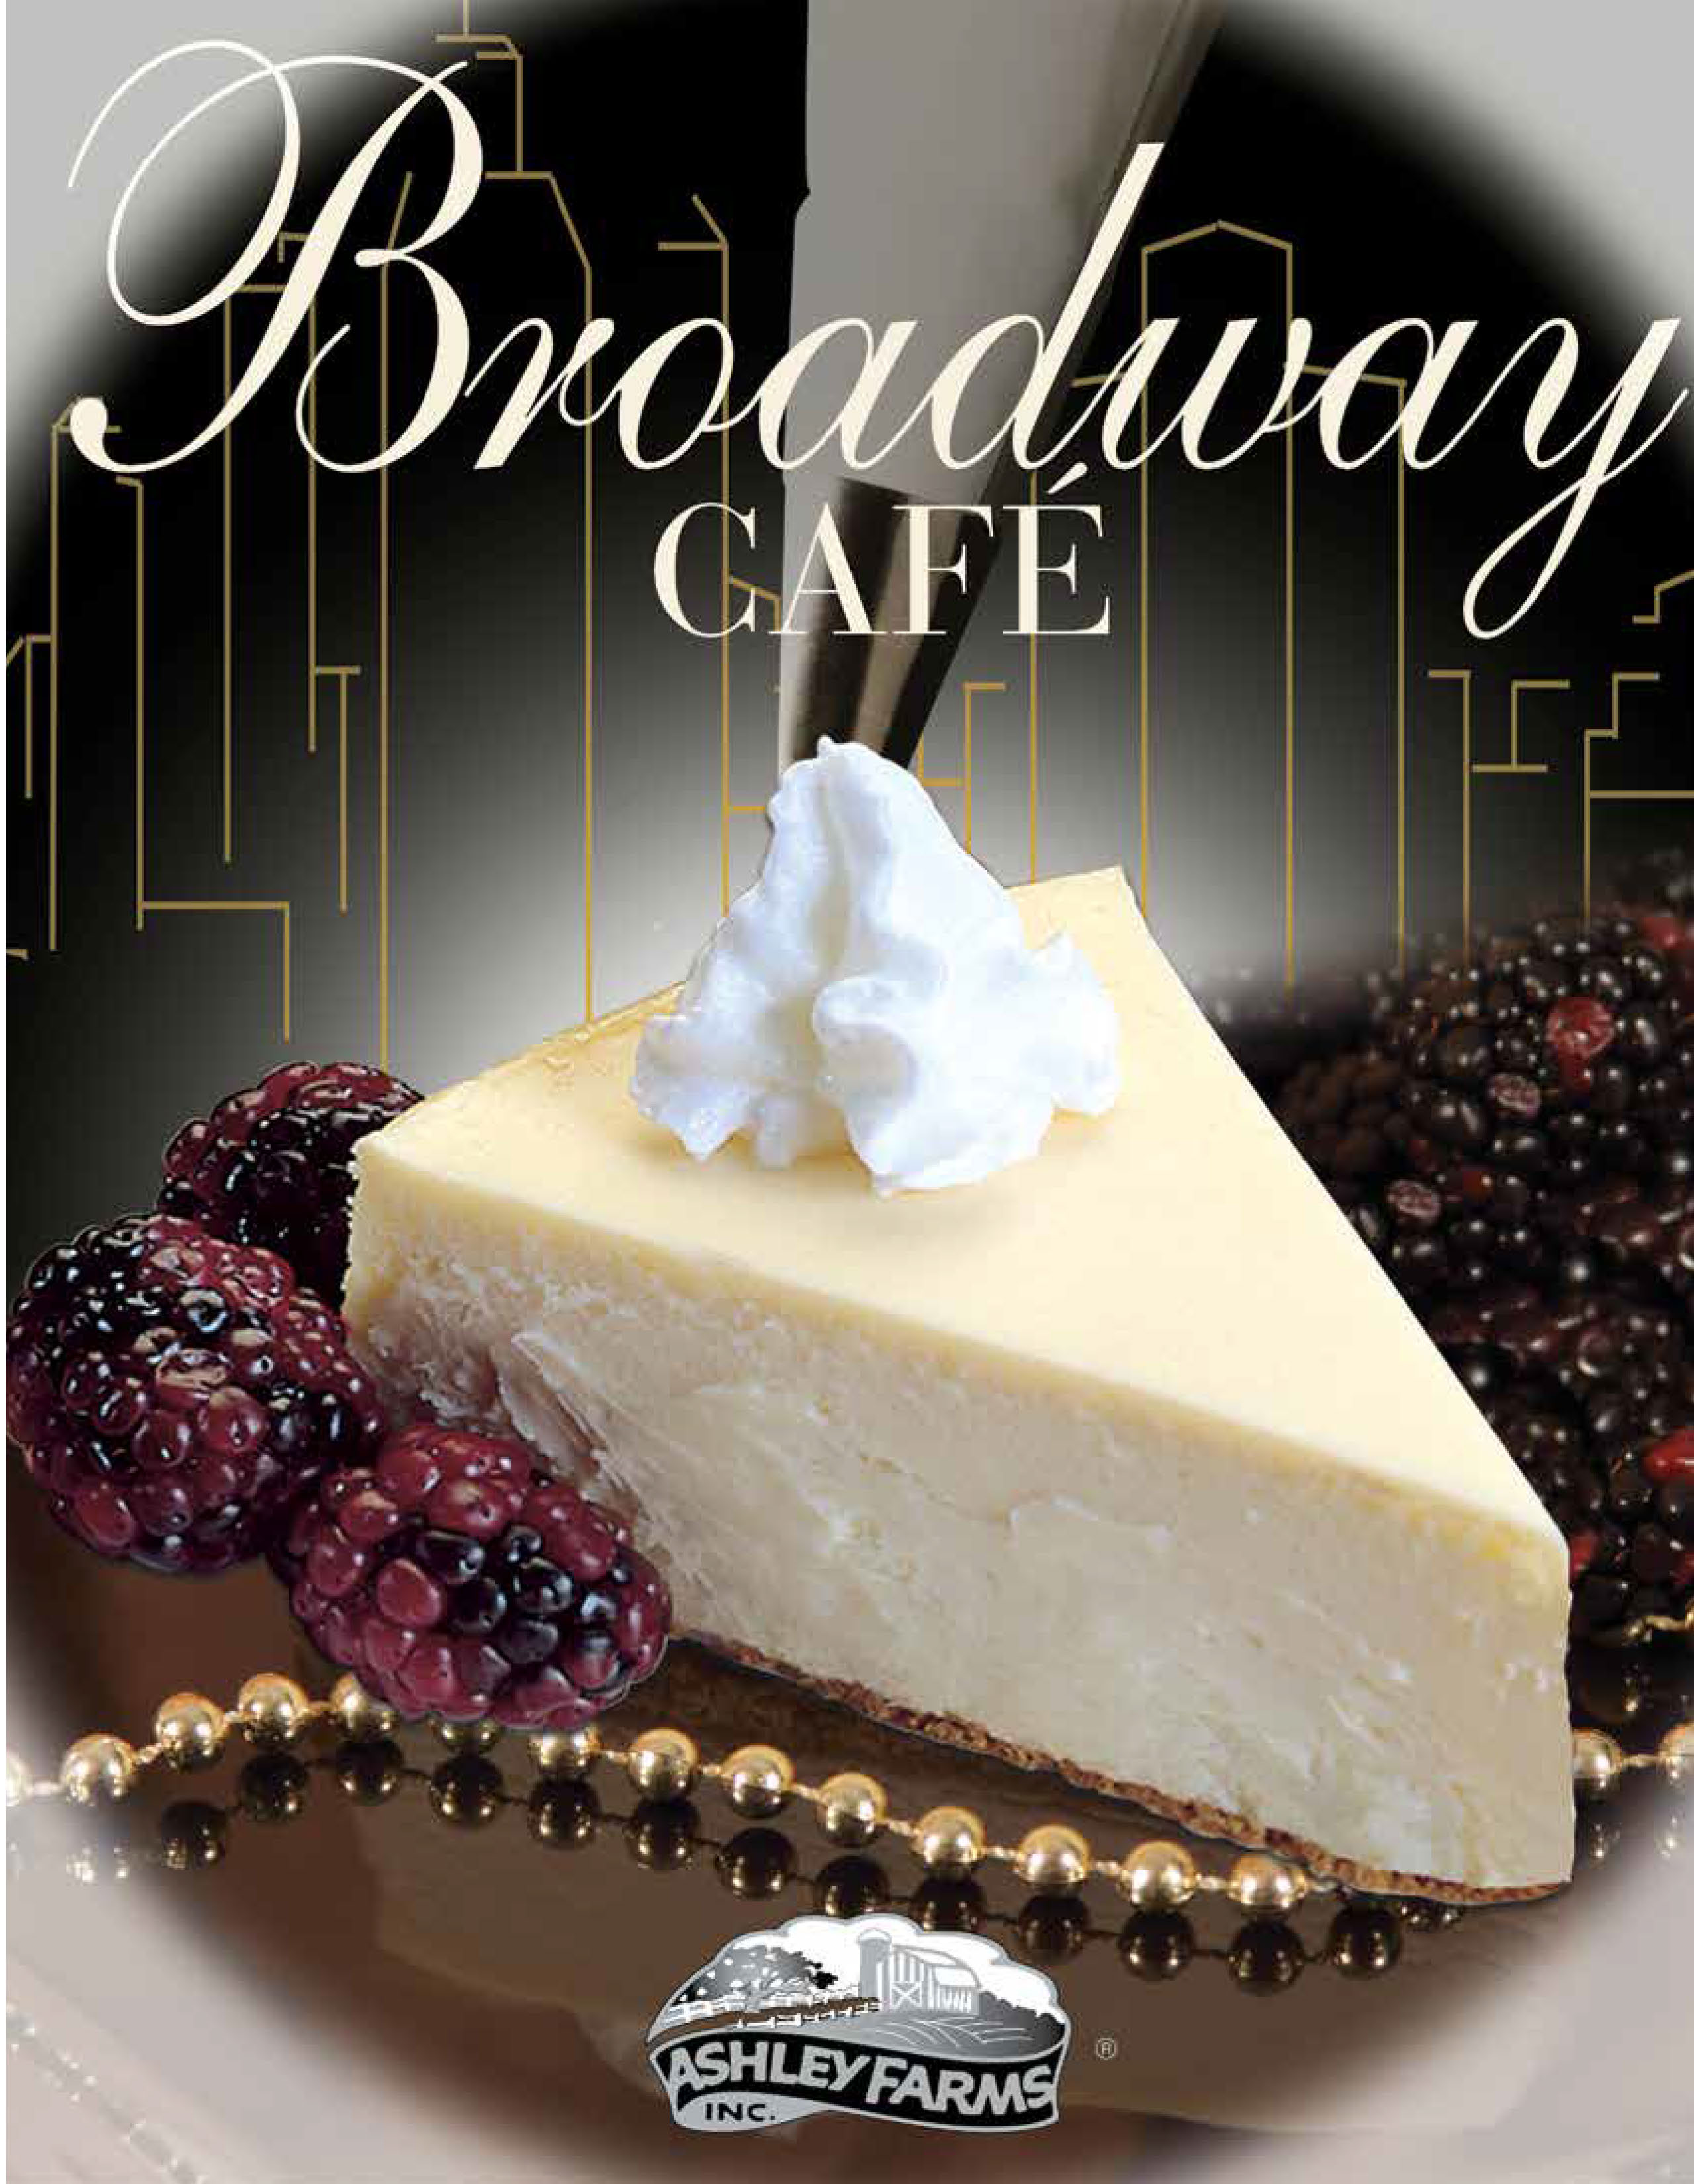 Broadway Cafe - Single Page_Page_01